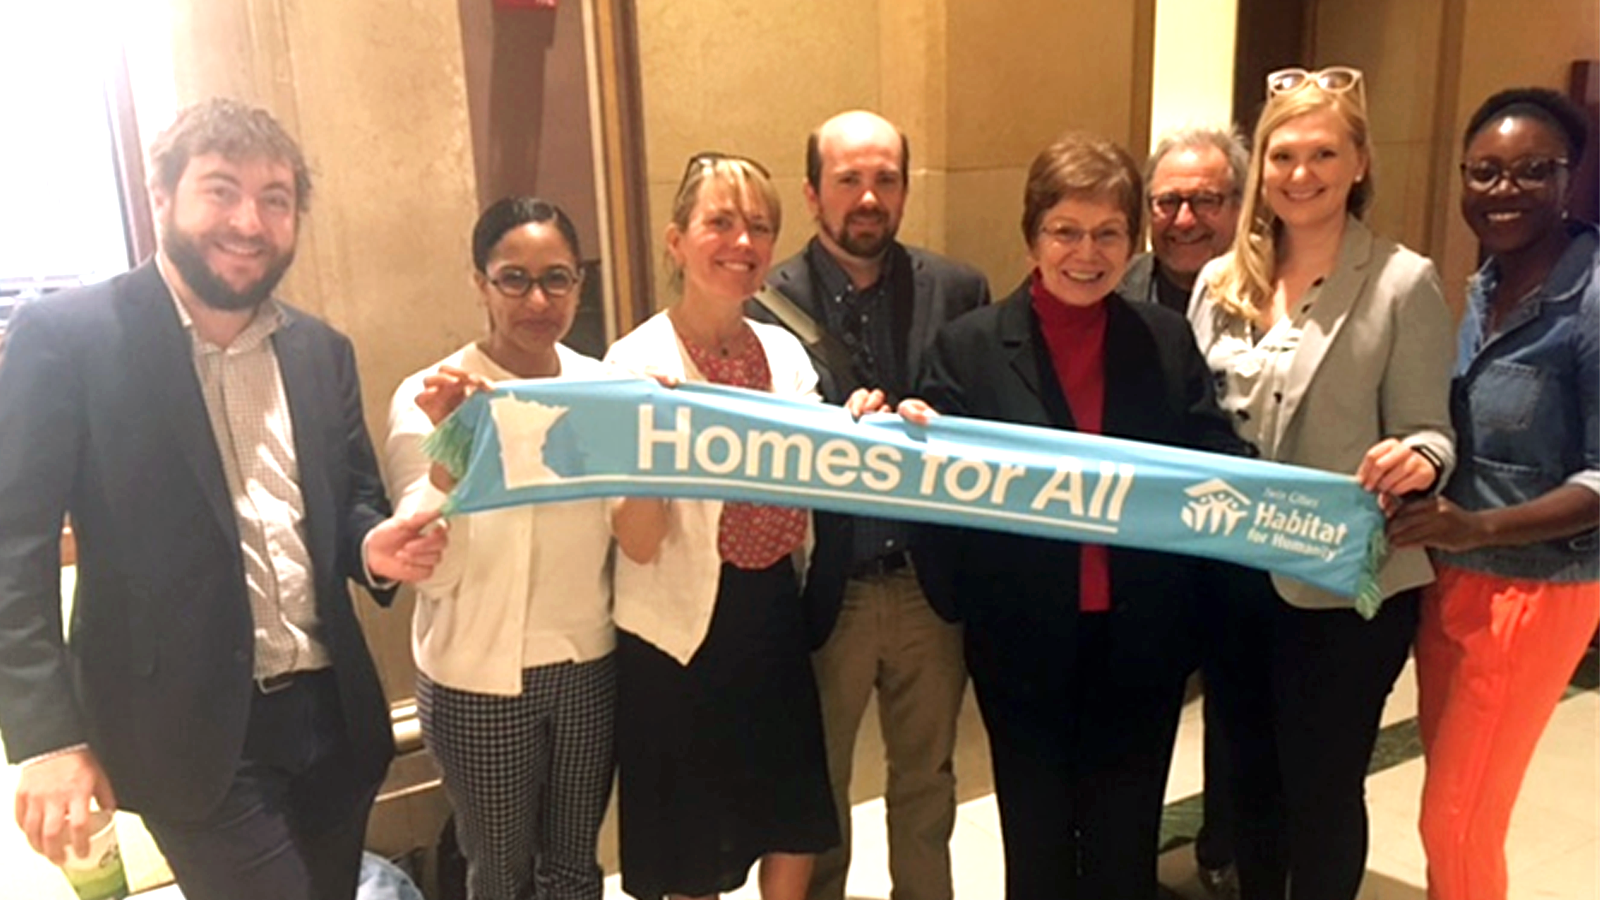 homes_for_all_group_2018